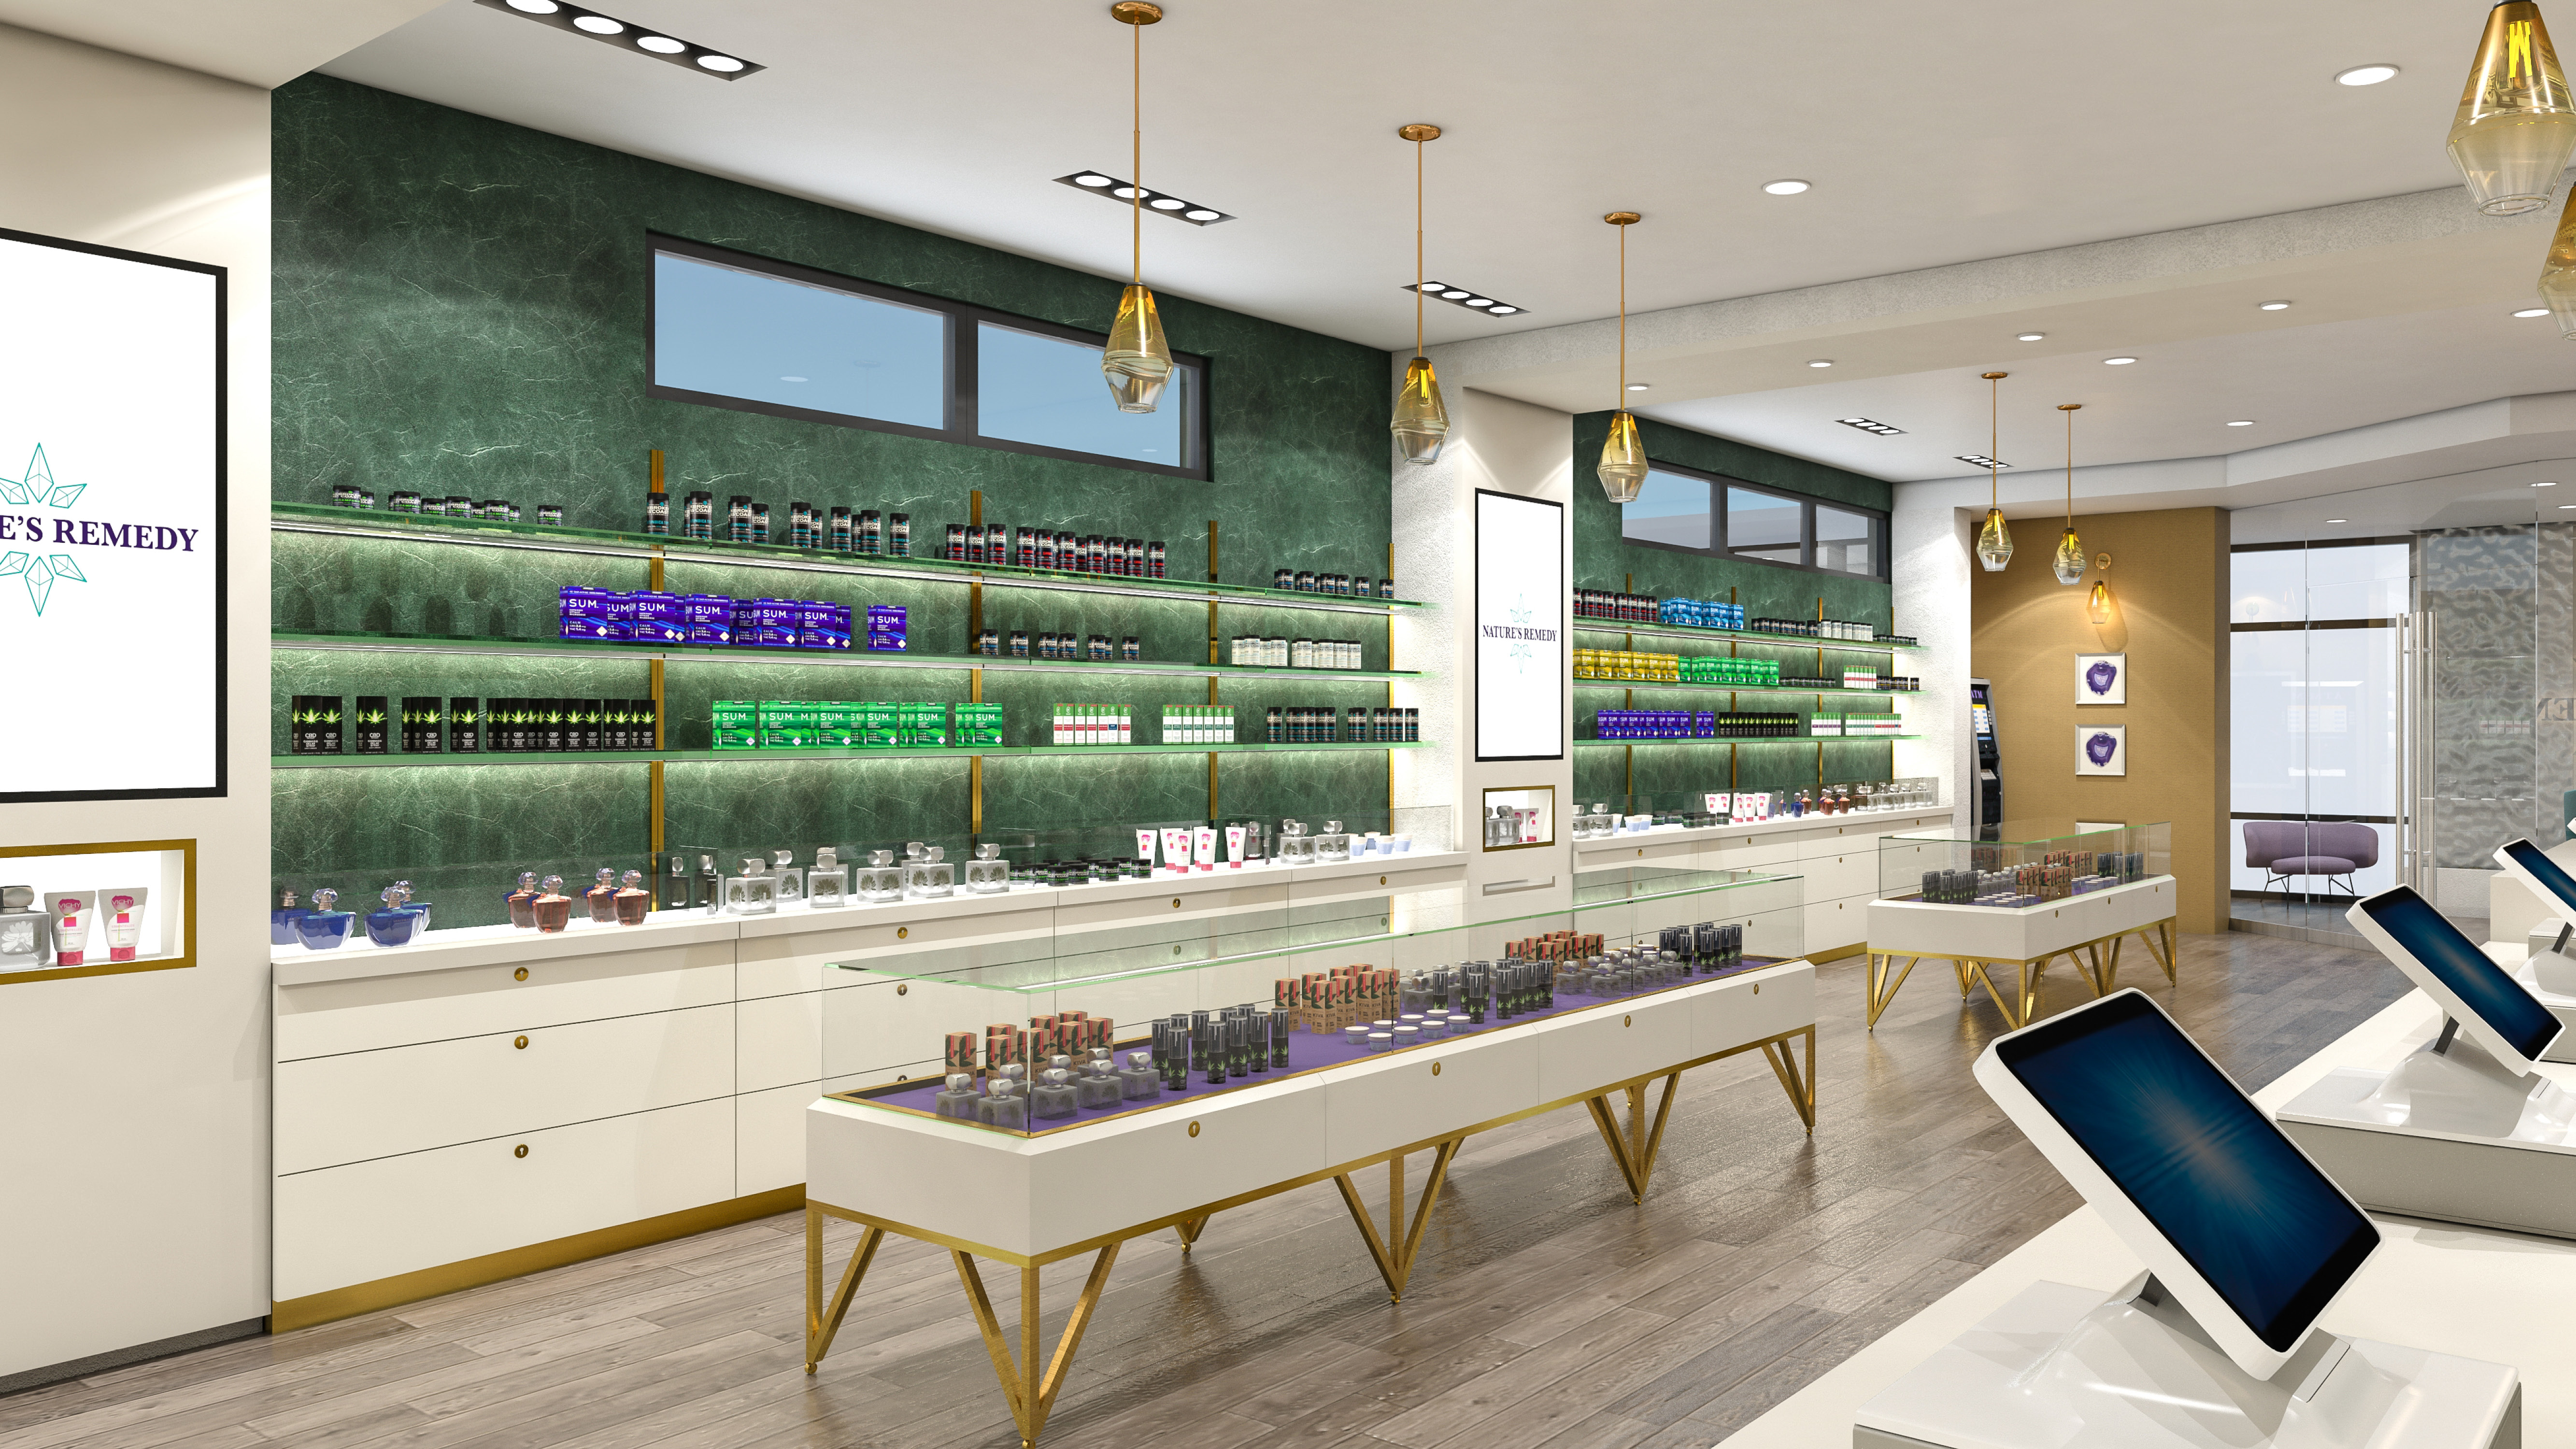 Nature's Remedy Dispensary - Spaceplanning by High Road Studio